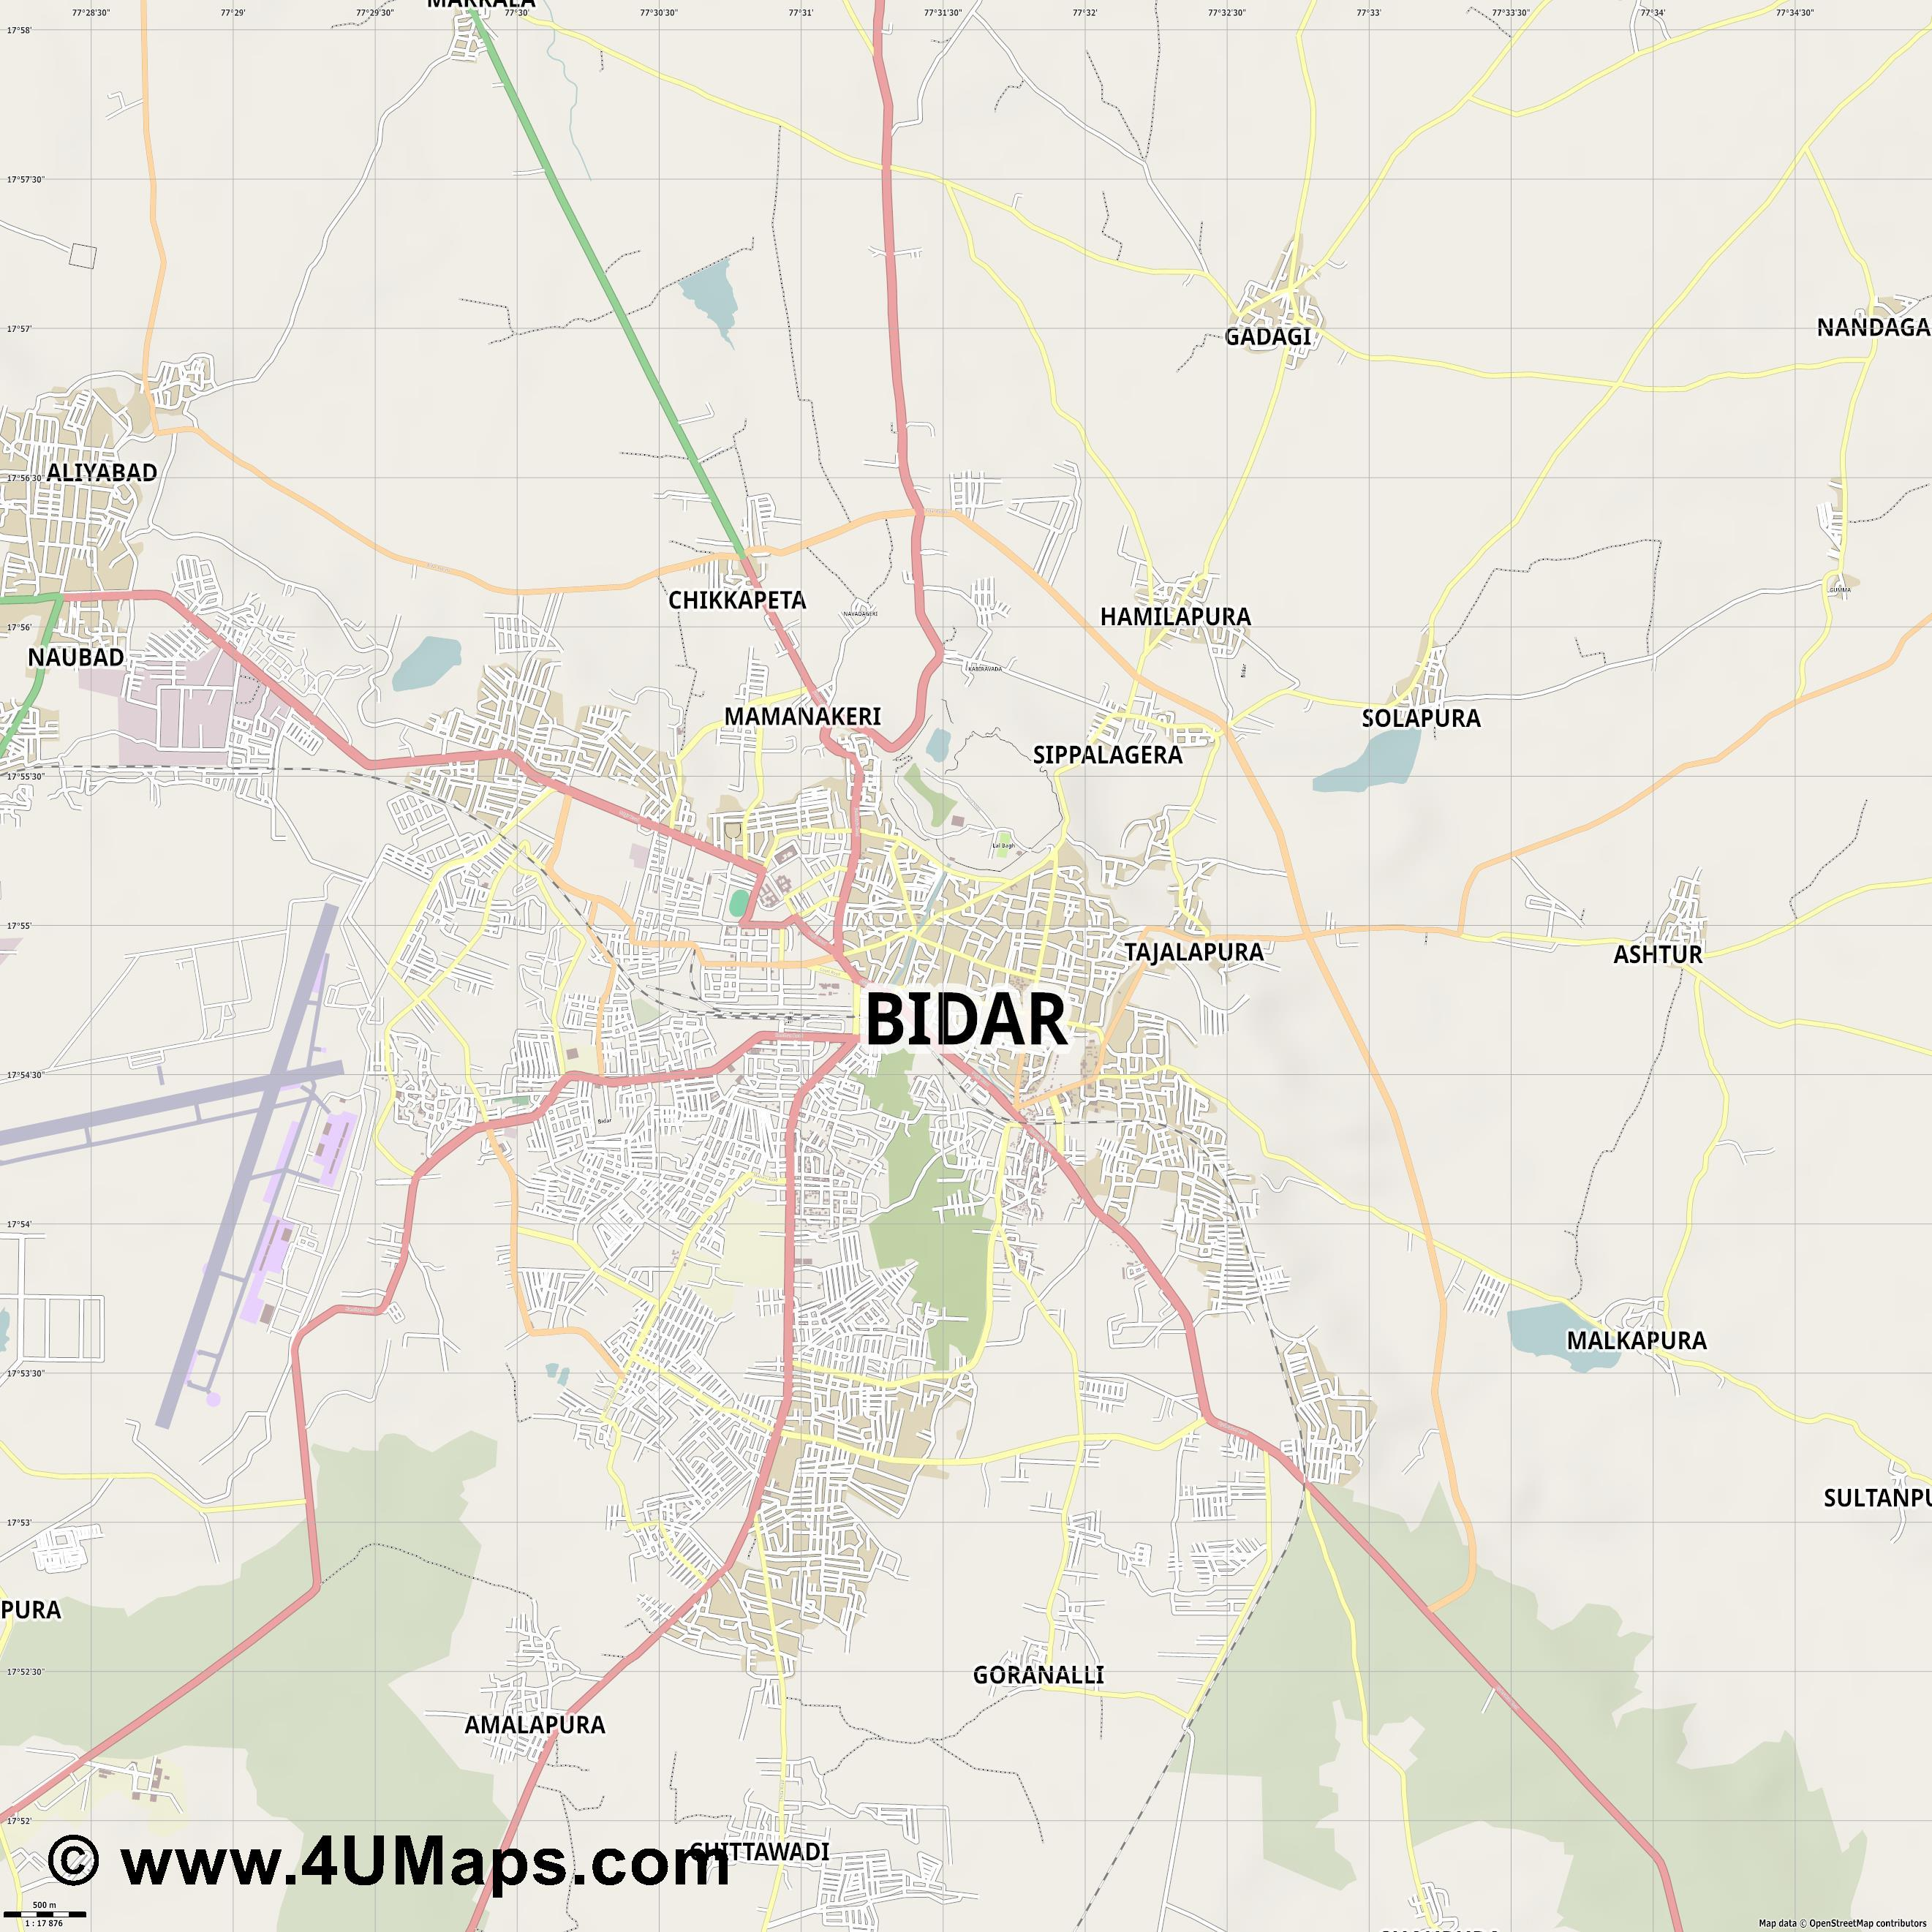 Bidar Bidara  jpg ultra high detail preview vector city map